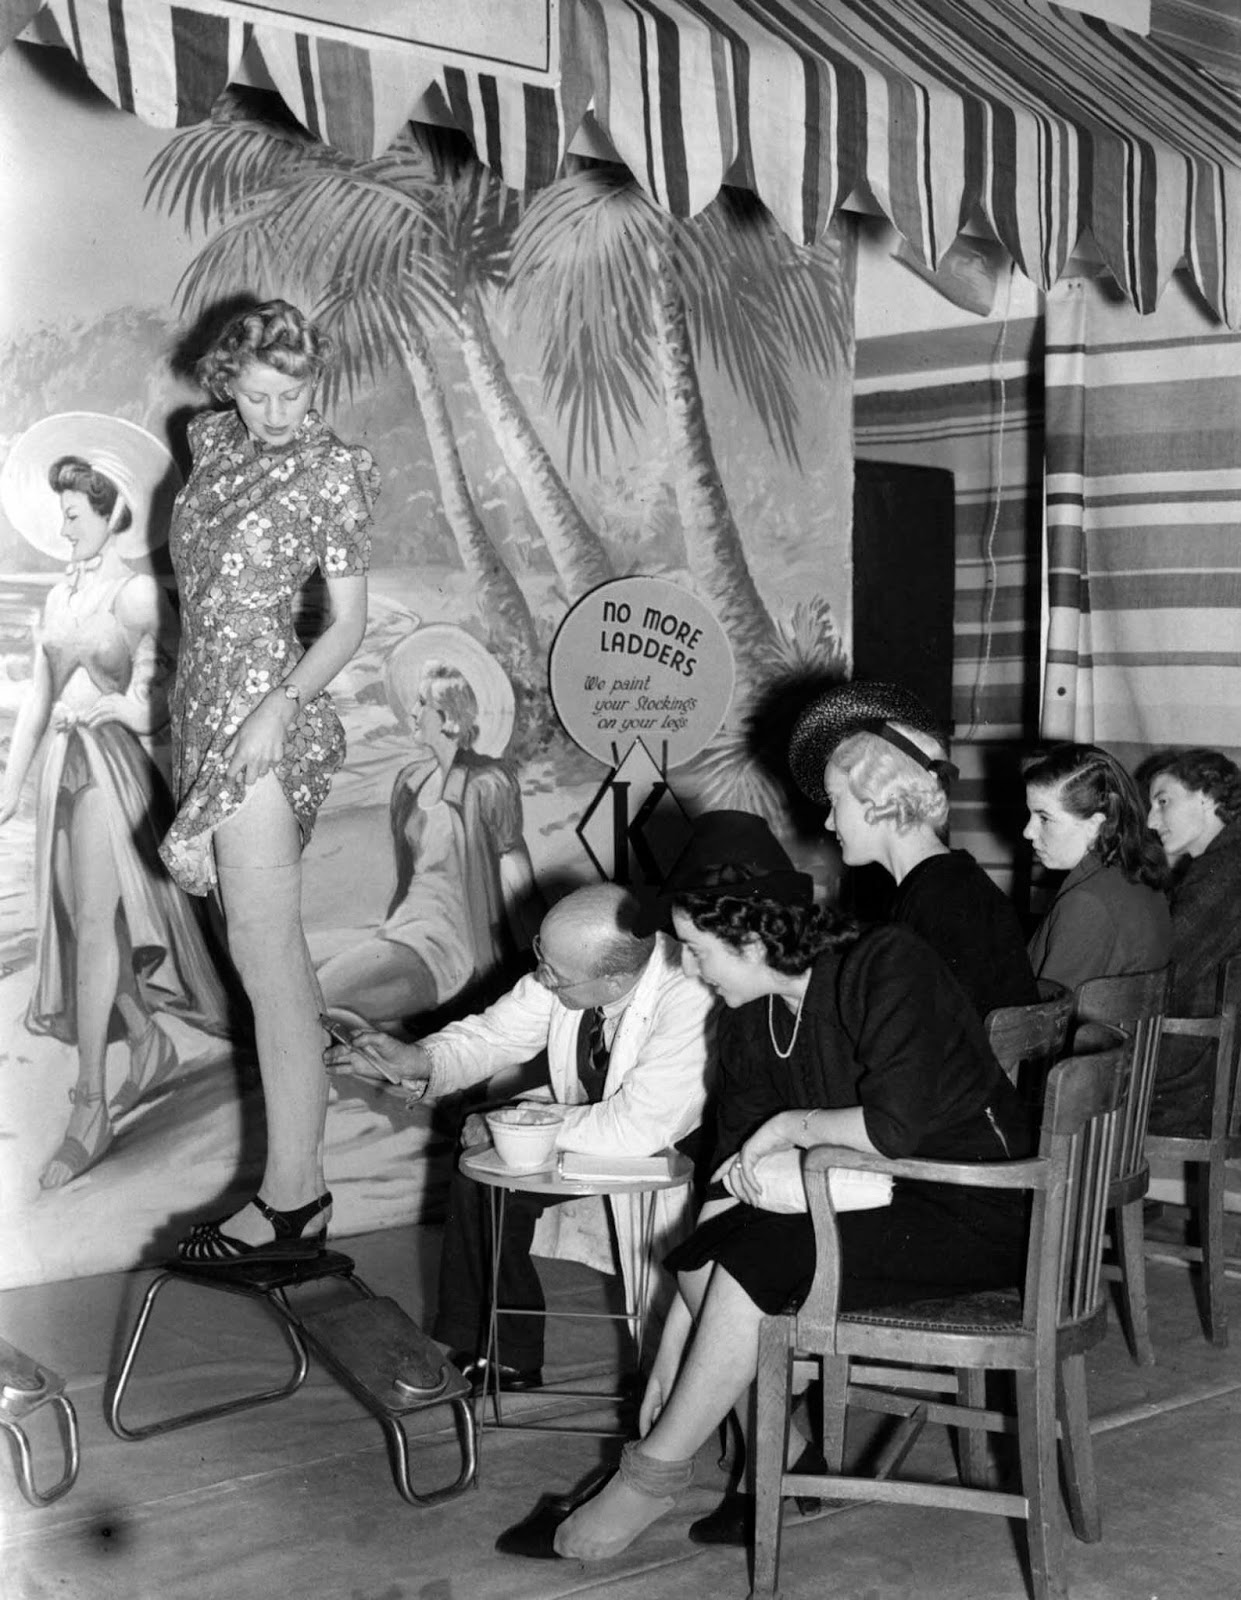 A shoe store offers a unique service by painting stockings on women's legs during the clothing rationing of World War II.